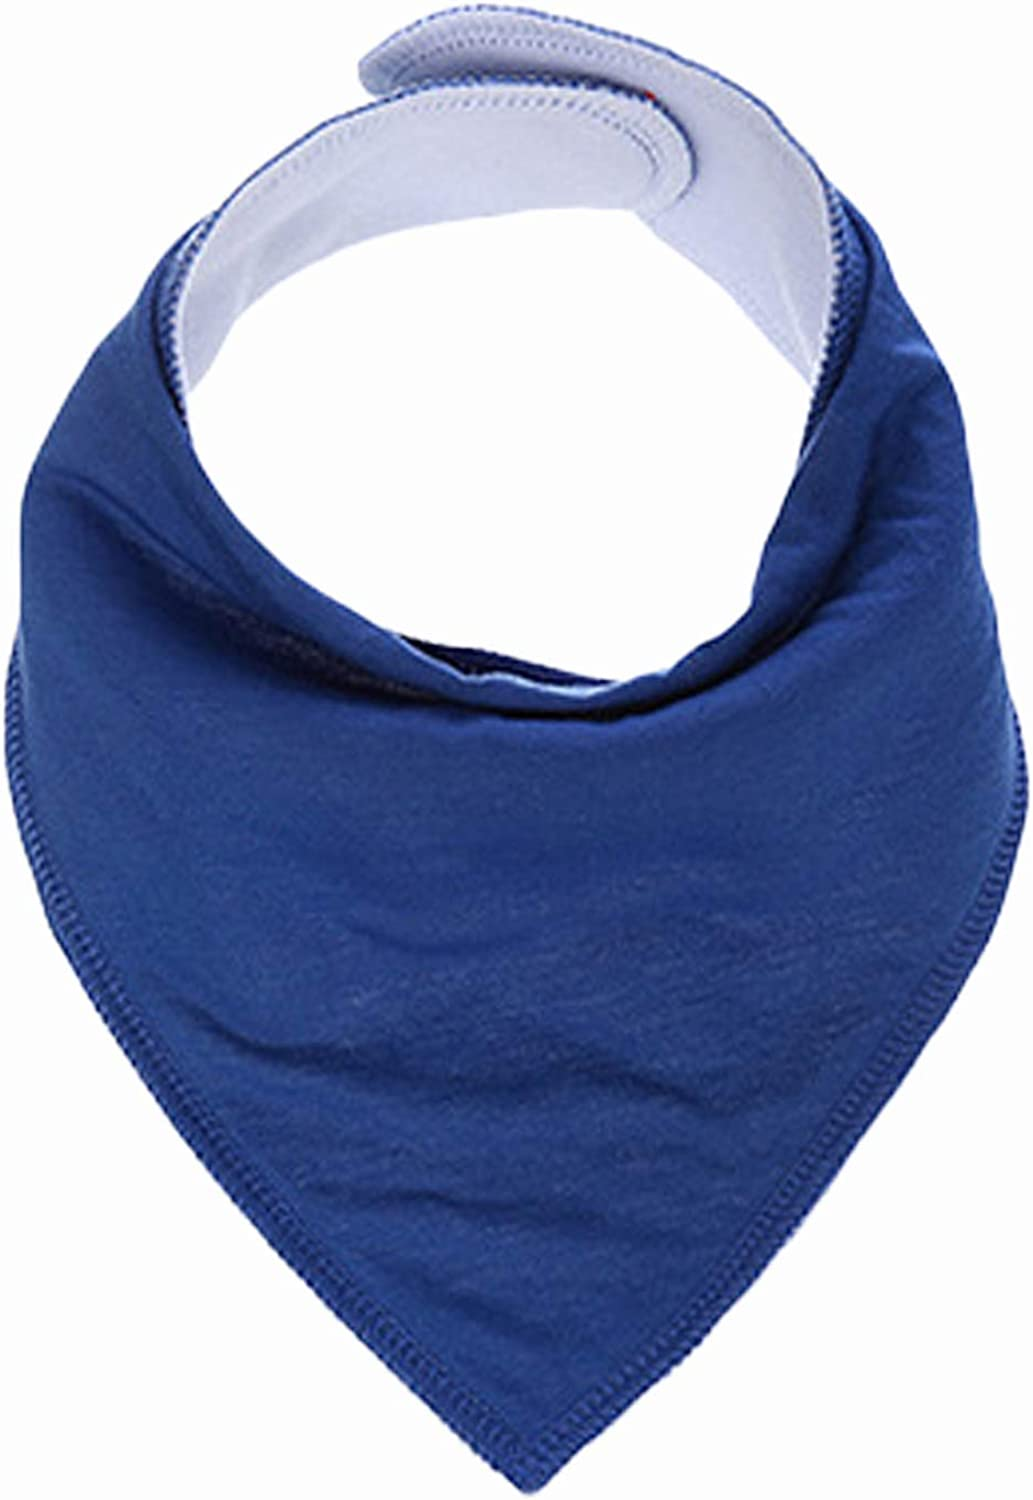 Bestgift Unisex Baby Snap Drool Bibs Cotton Solid Color